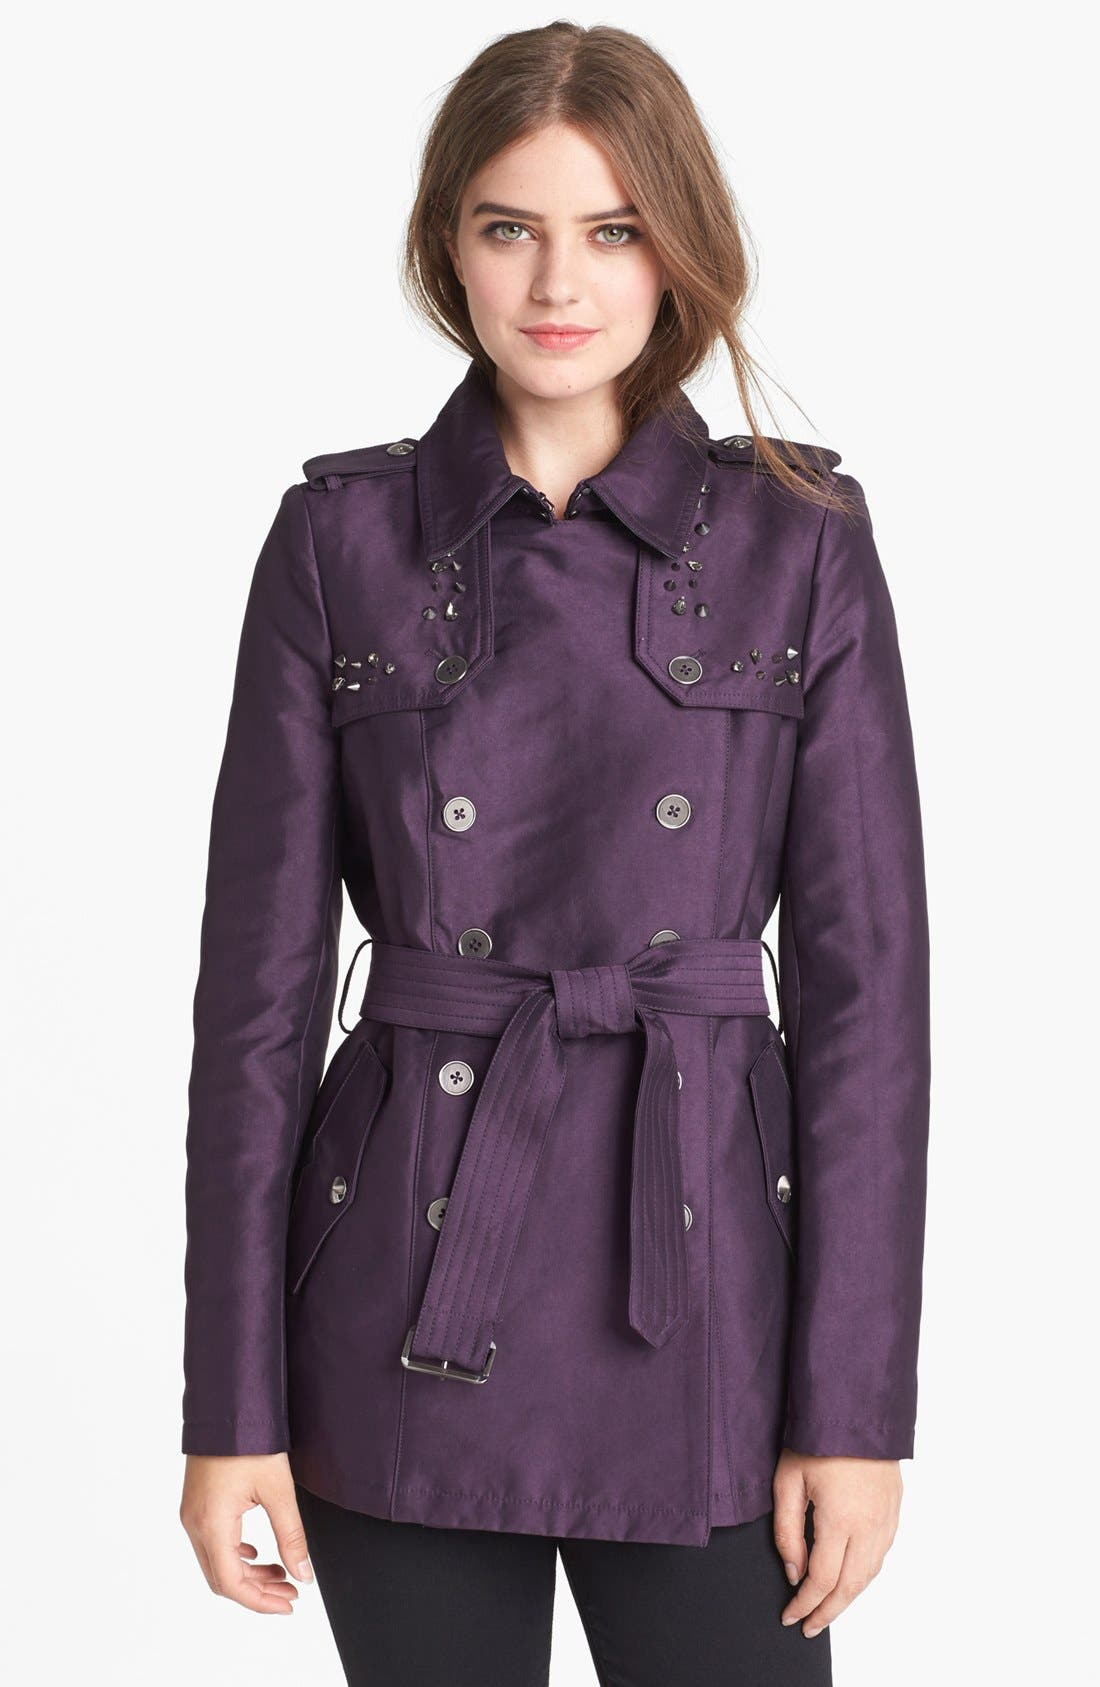 Alternate Image 1 Selected - Sam Edelman Studded Double Breasted Trench Coat (Online Only)